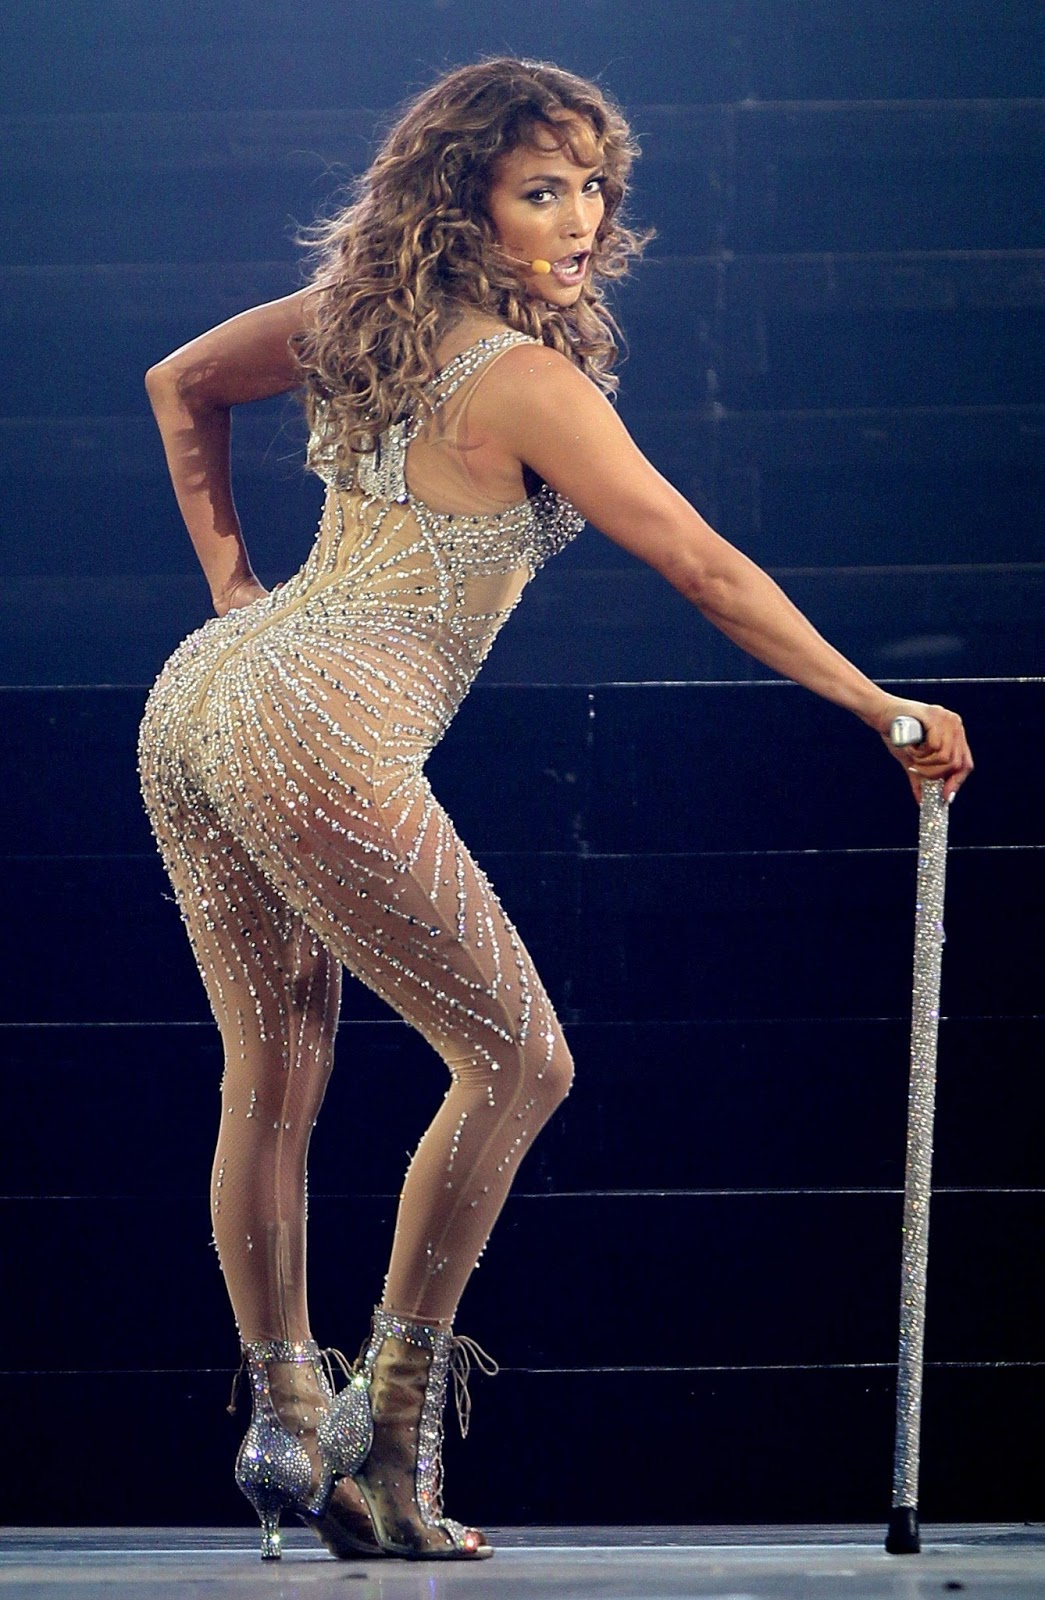 from Dilan pics of jlo nude butt